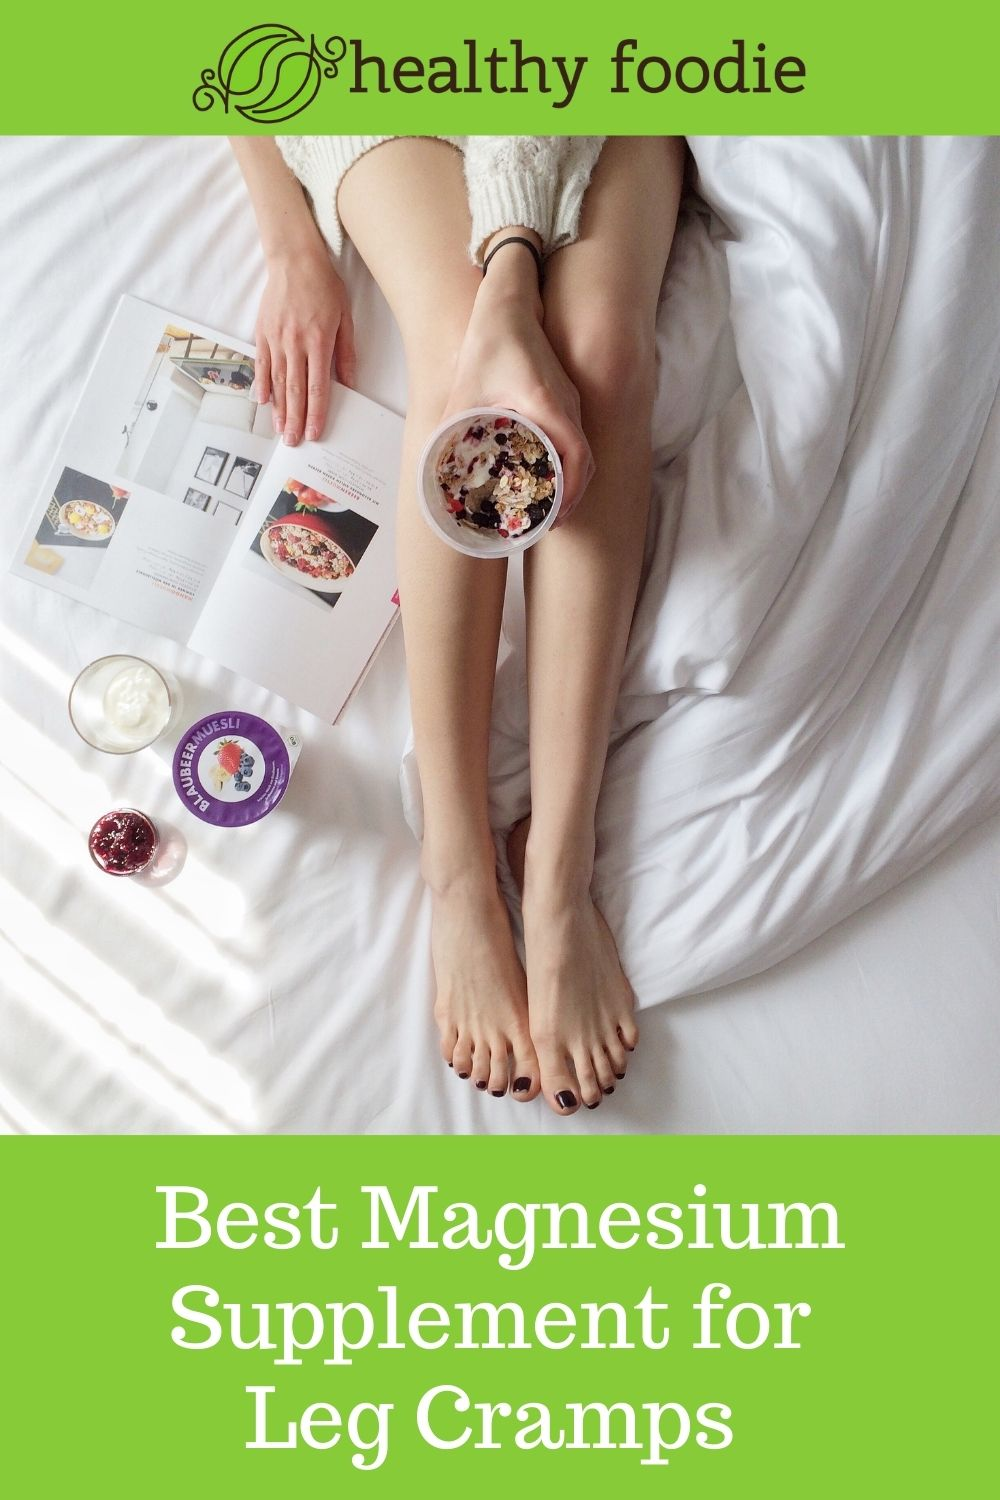 Best Magnesium Supplement For Leg Cramps